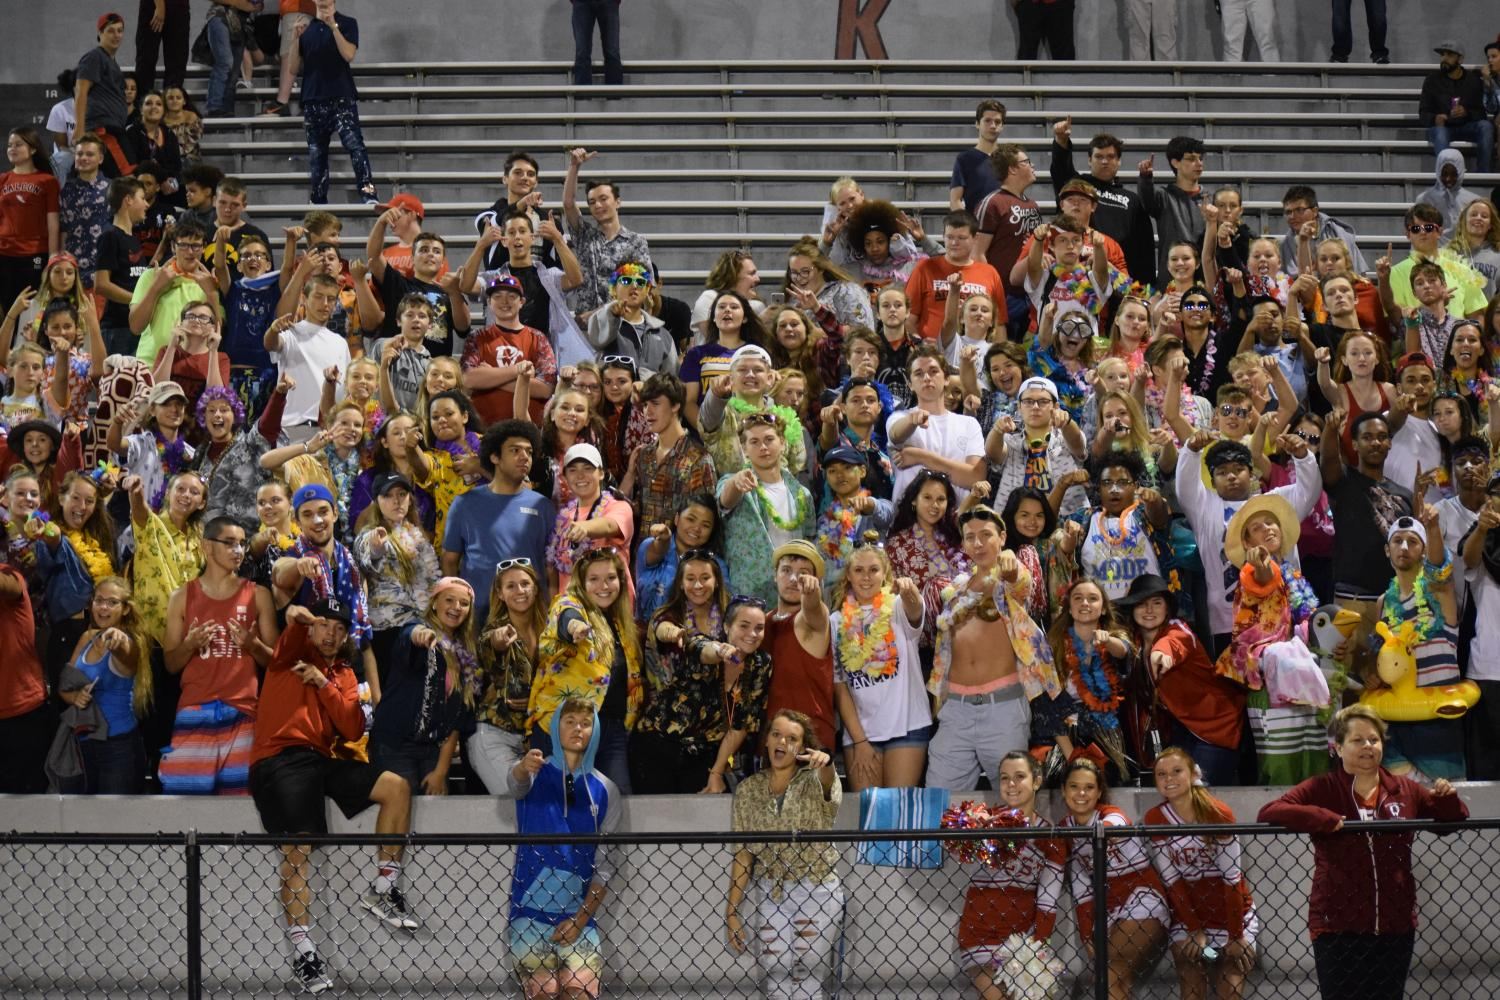 The students all dressed in the theme beach to show unity and support for the football team.